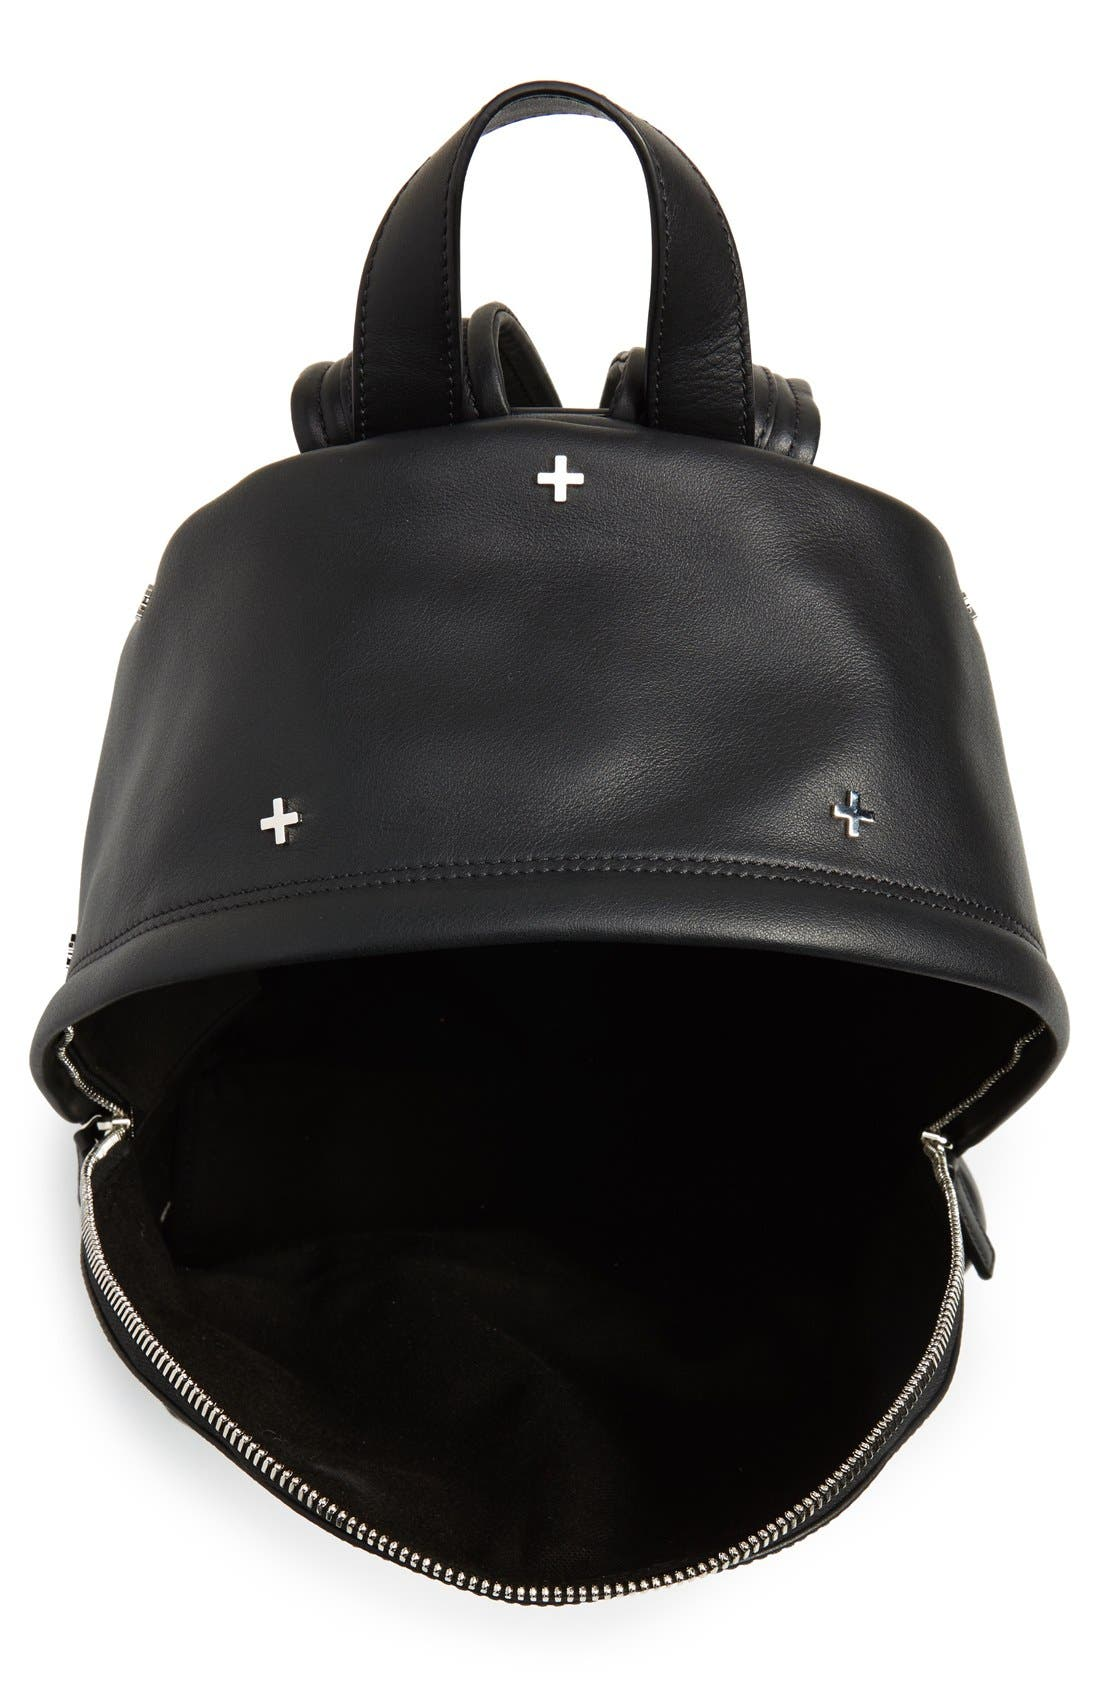 GIVENCHY,                             Metal Cross Embellished Calfskin Leather Backpack,                             Alternate thumbnail 6, color,                             001